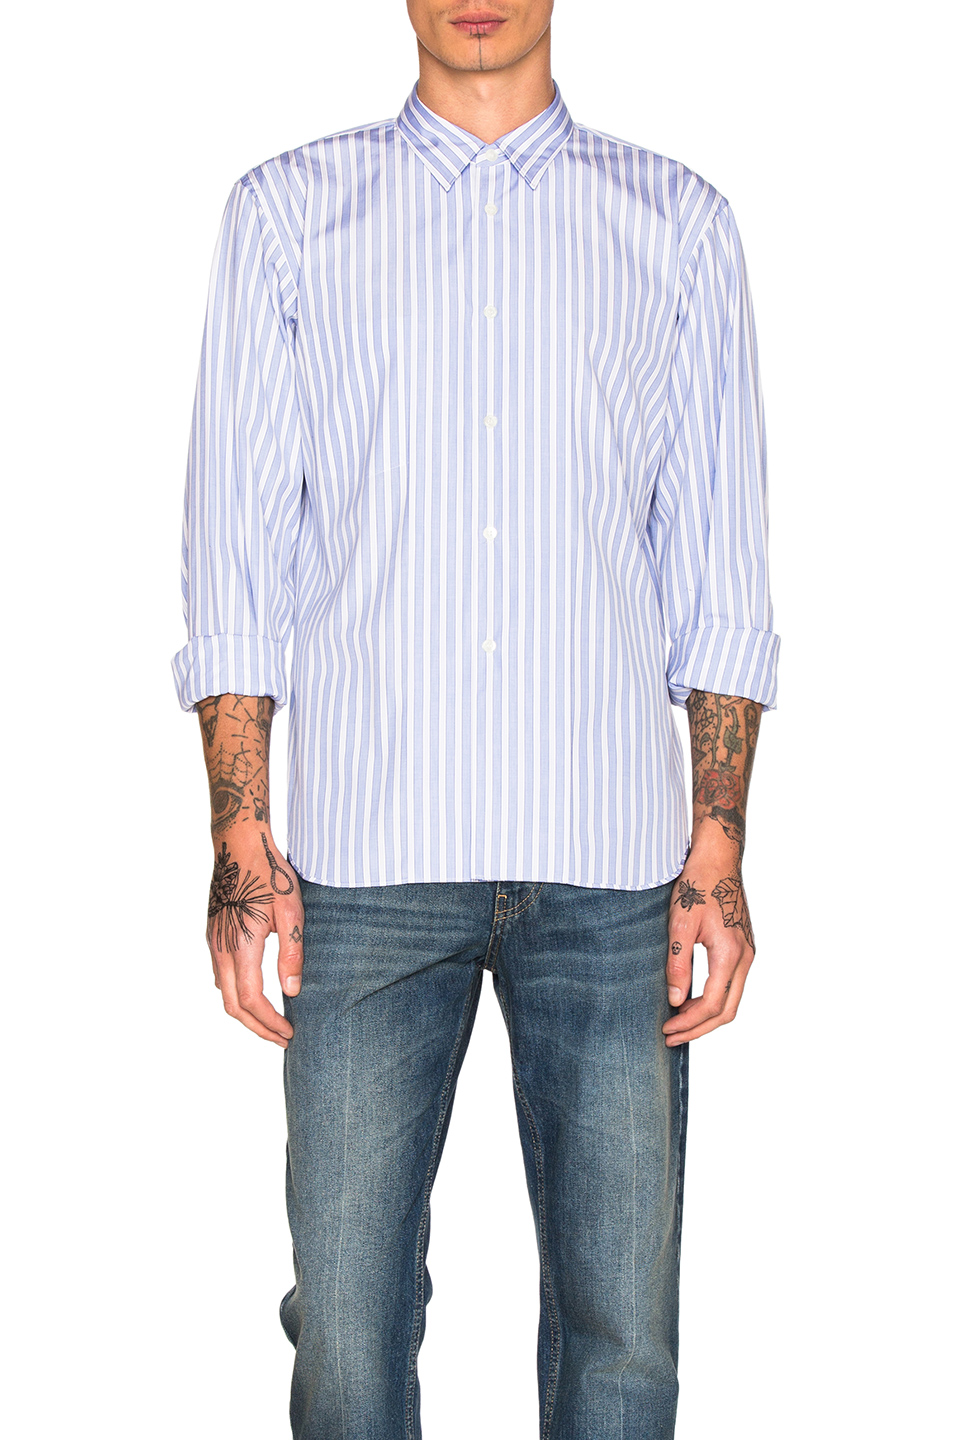 Comme Des Garcons Homme Plus Cotton Broad Stripe Shirt in Blue,Stripes